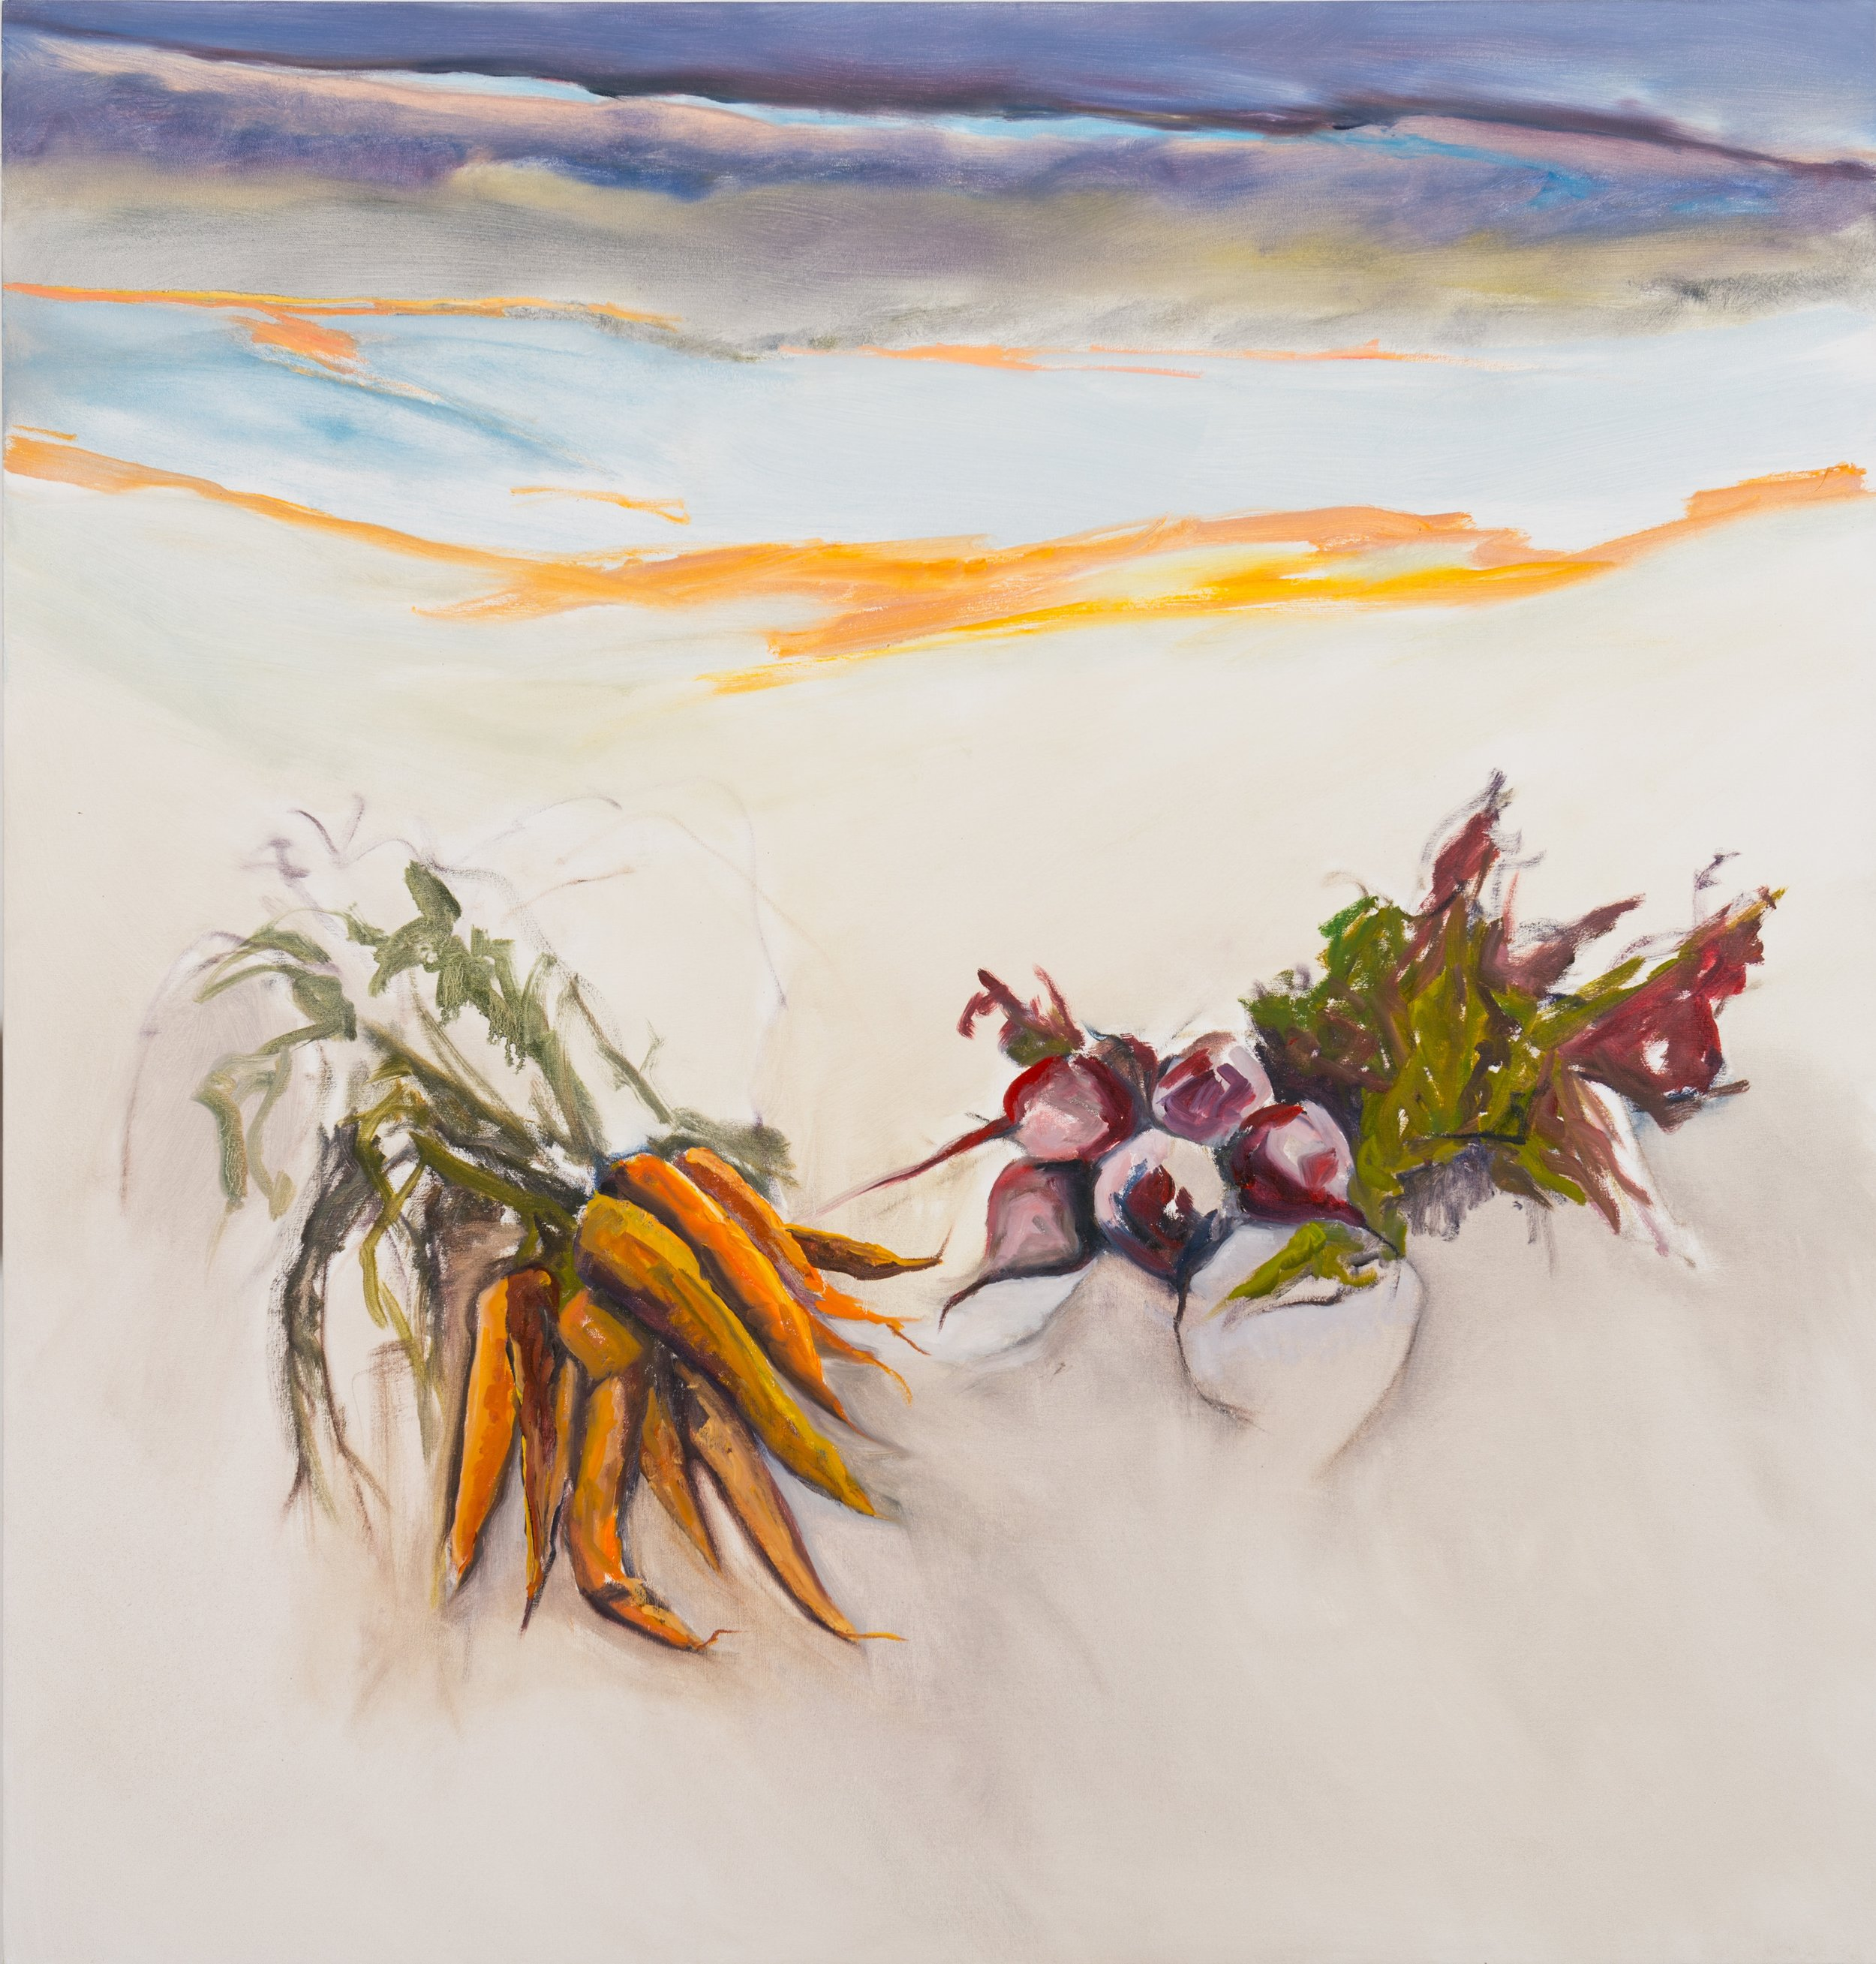 Mela's Carrots & Beets , 2013, Oil on Canvas, 54 x 52 inches